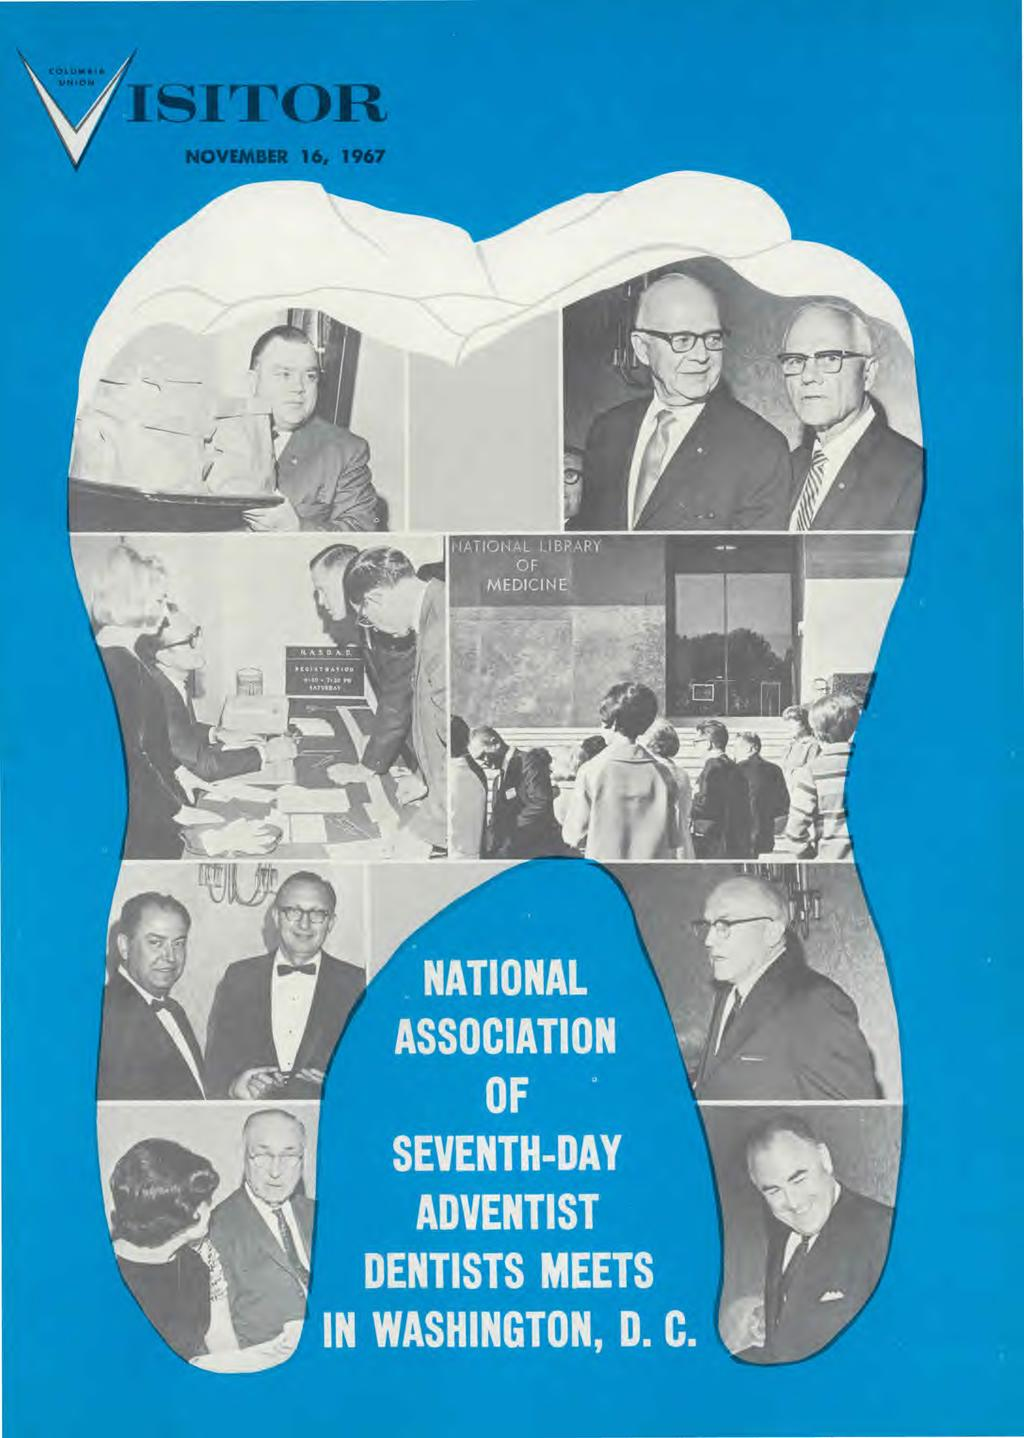 SITOR NATIONAL ASSOCIATION,\ SEVENTH-DAY ADVENTIST DENTISTS MEETS IN